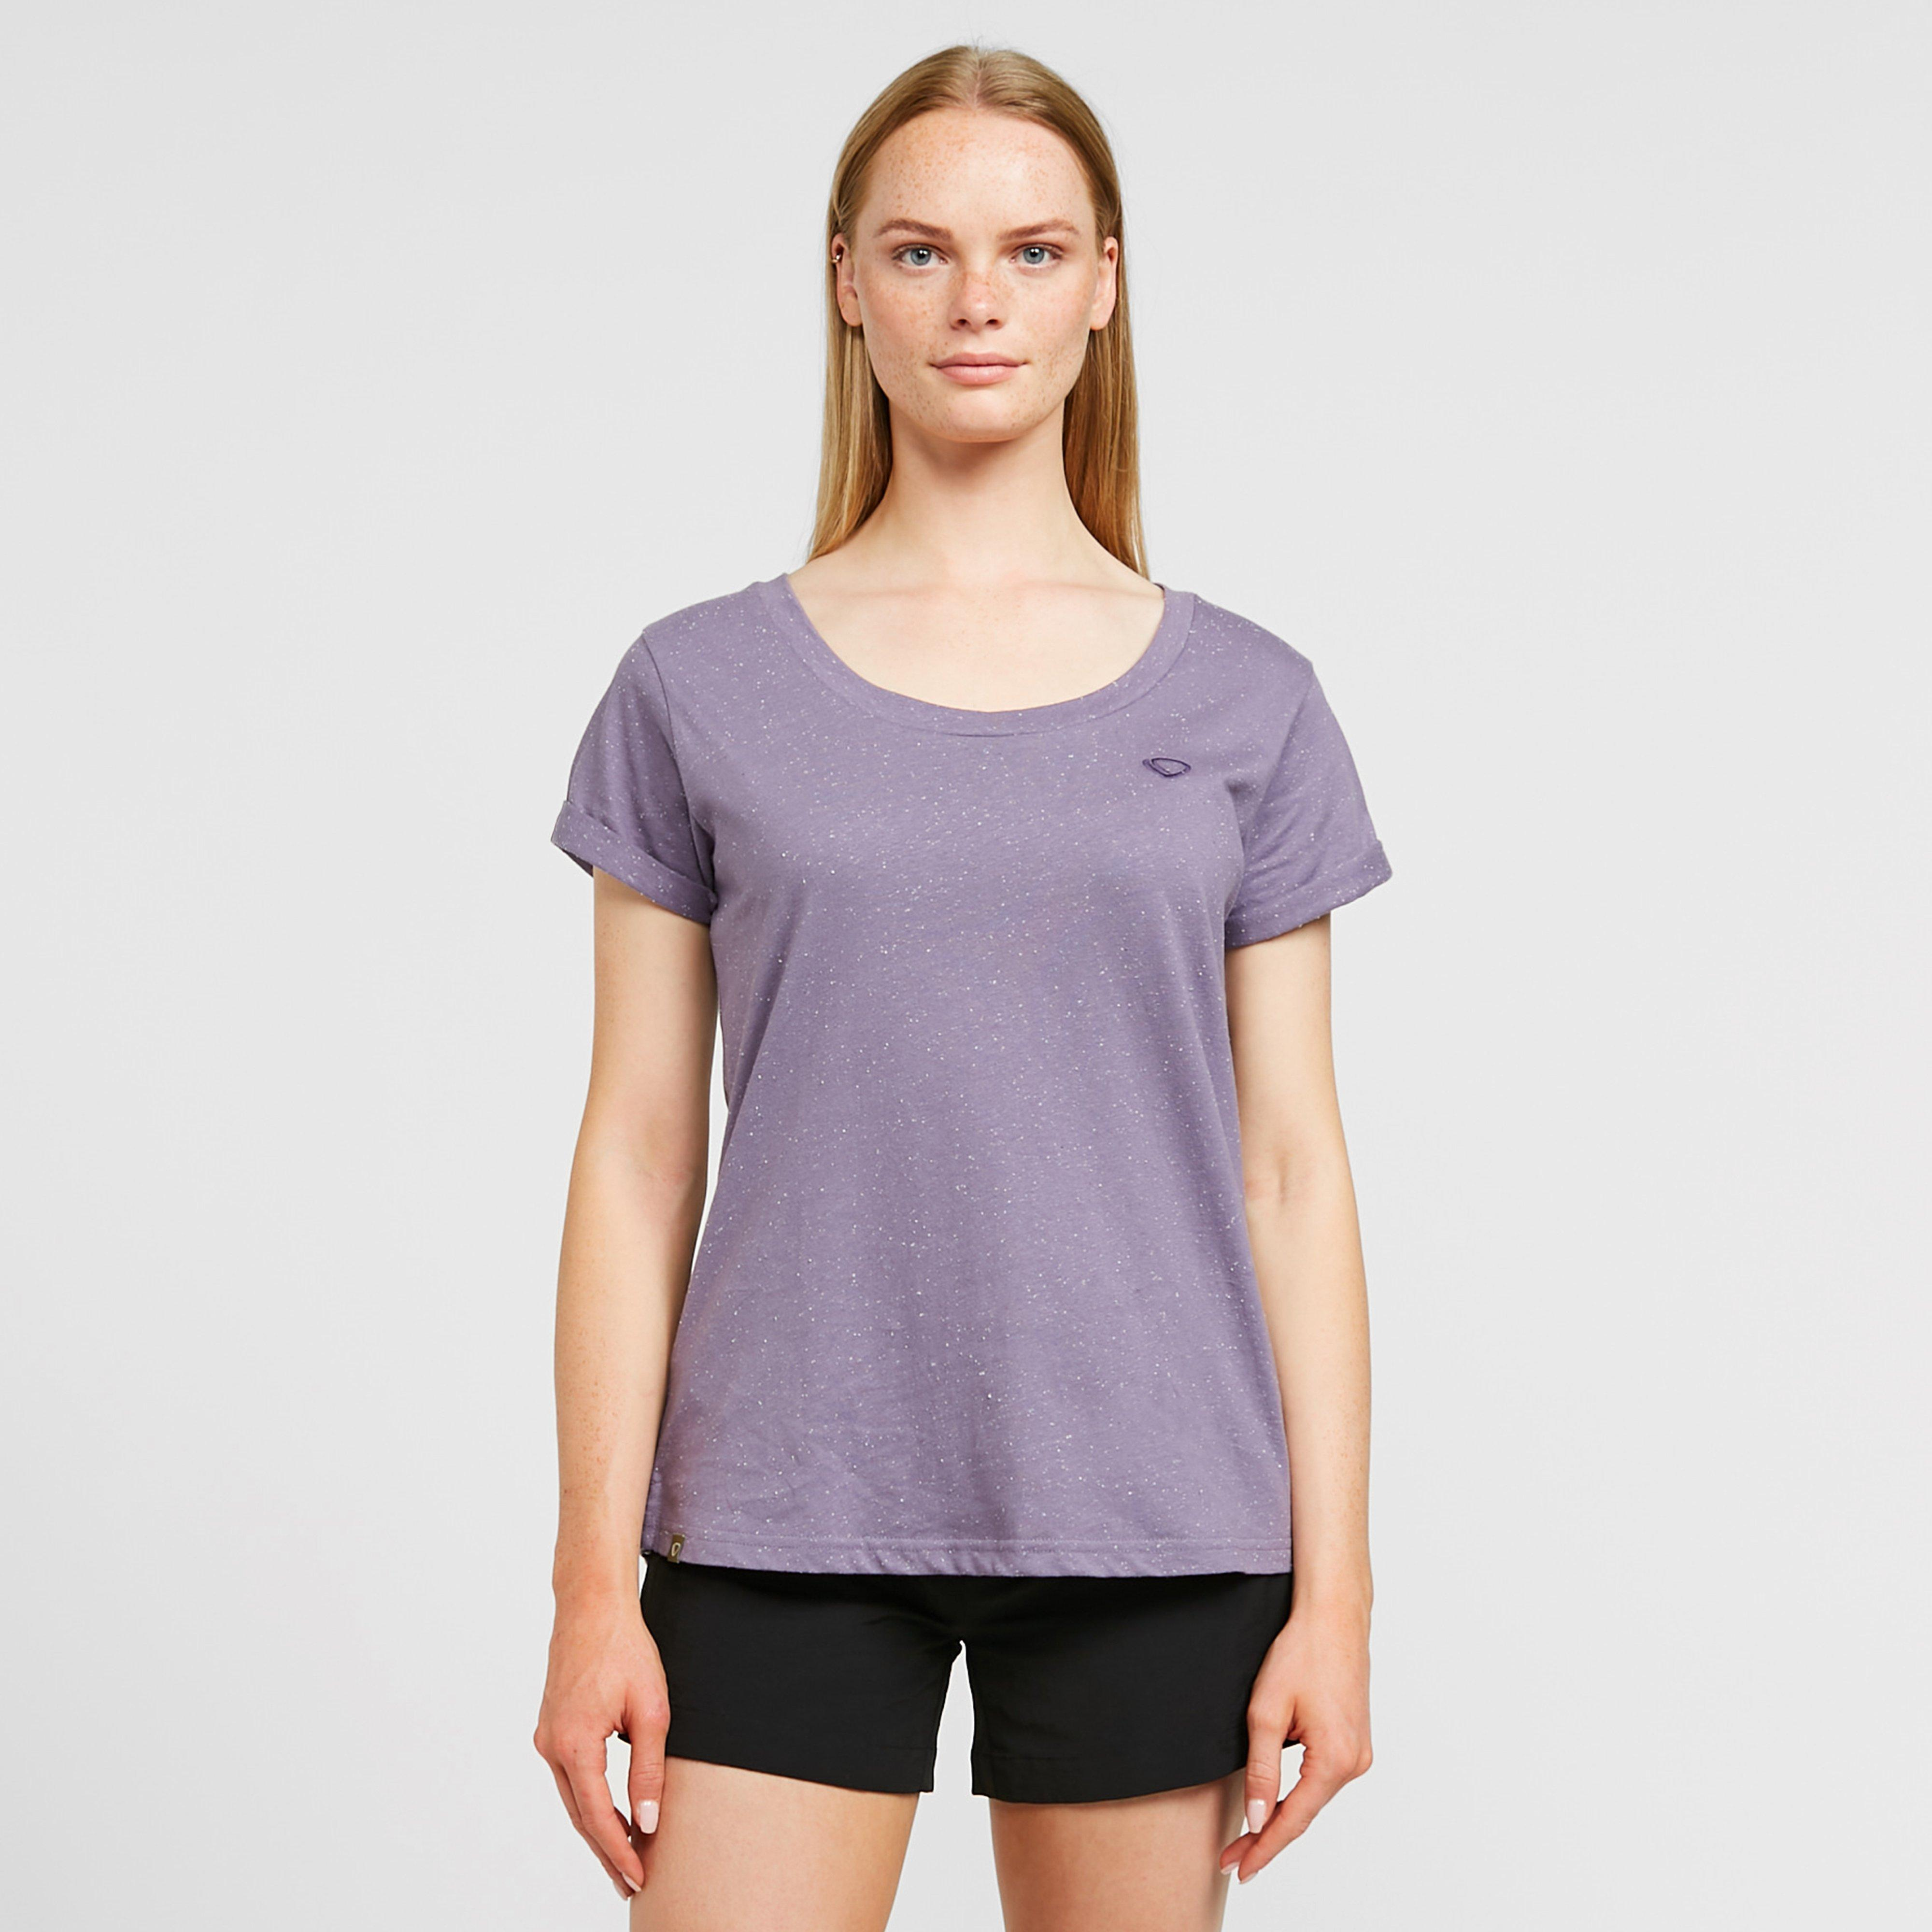 Brasher Womens Neppy T-shirt - Pur/pur  Pur/pur